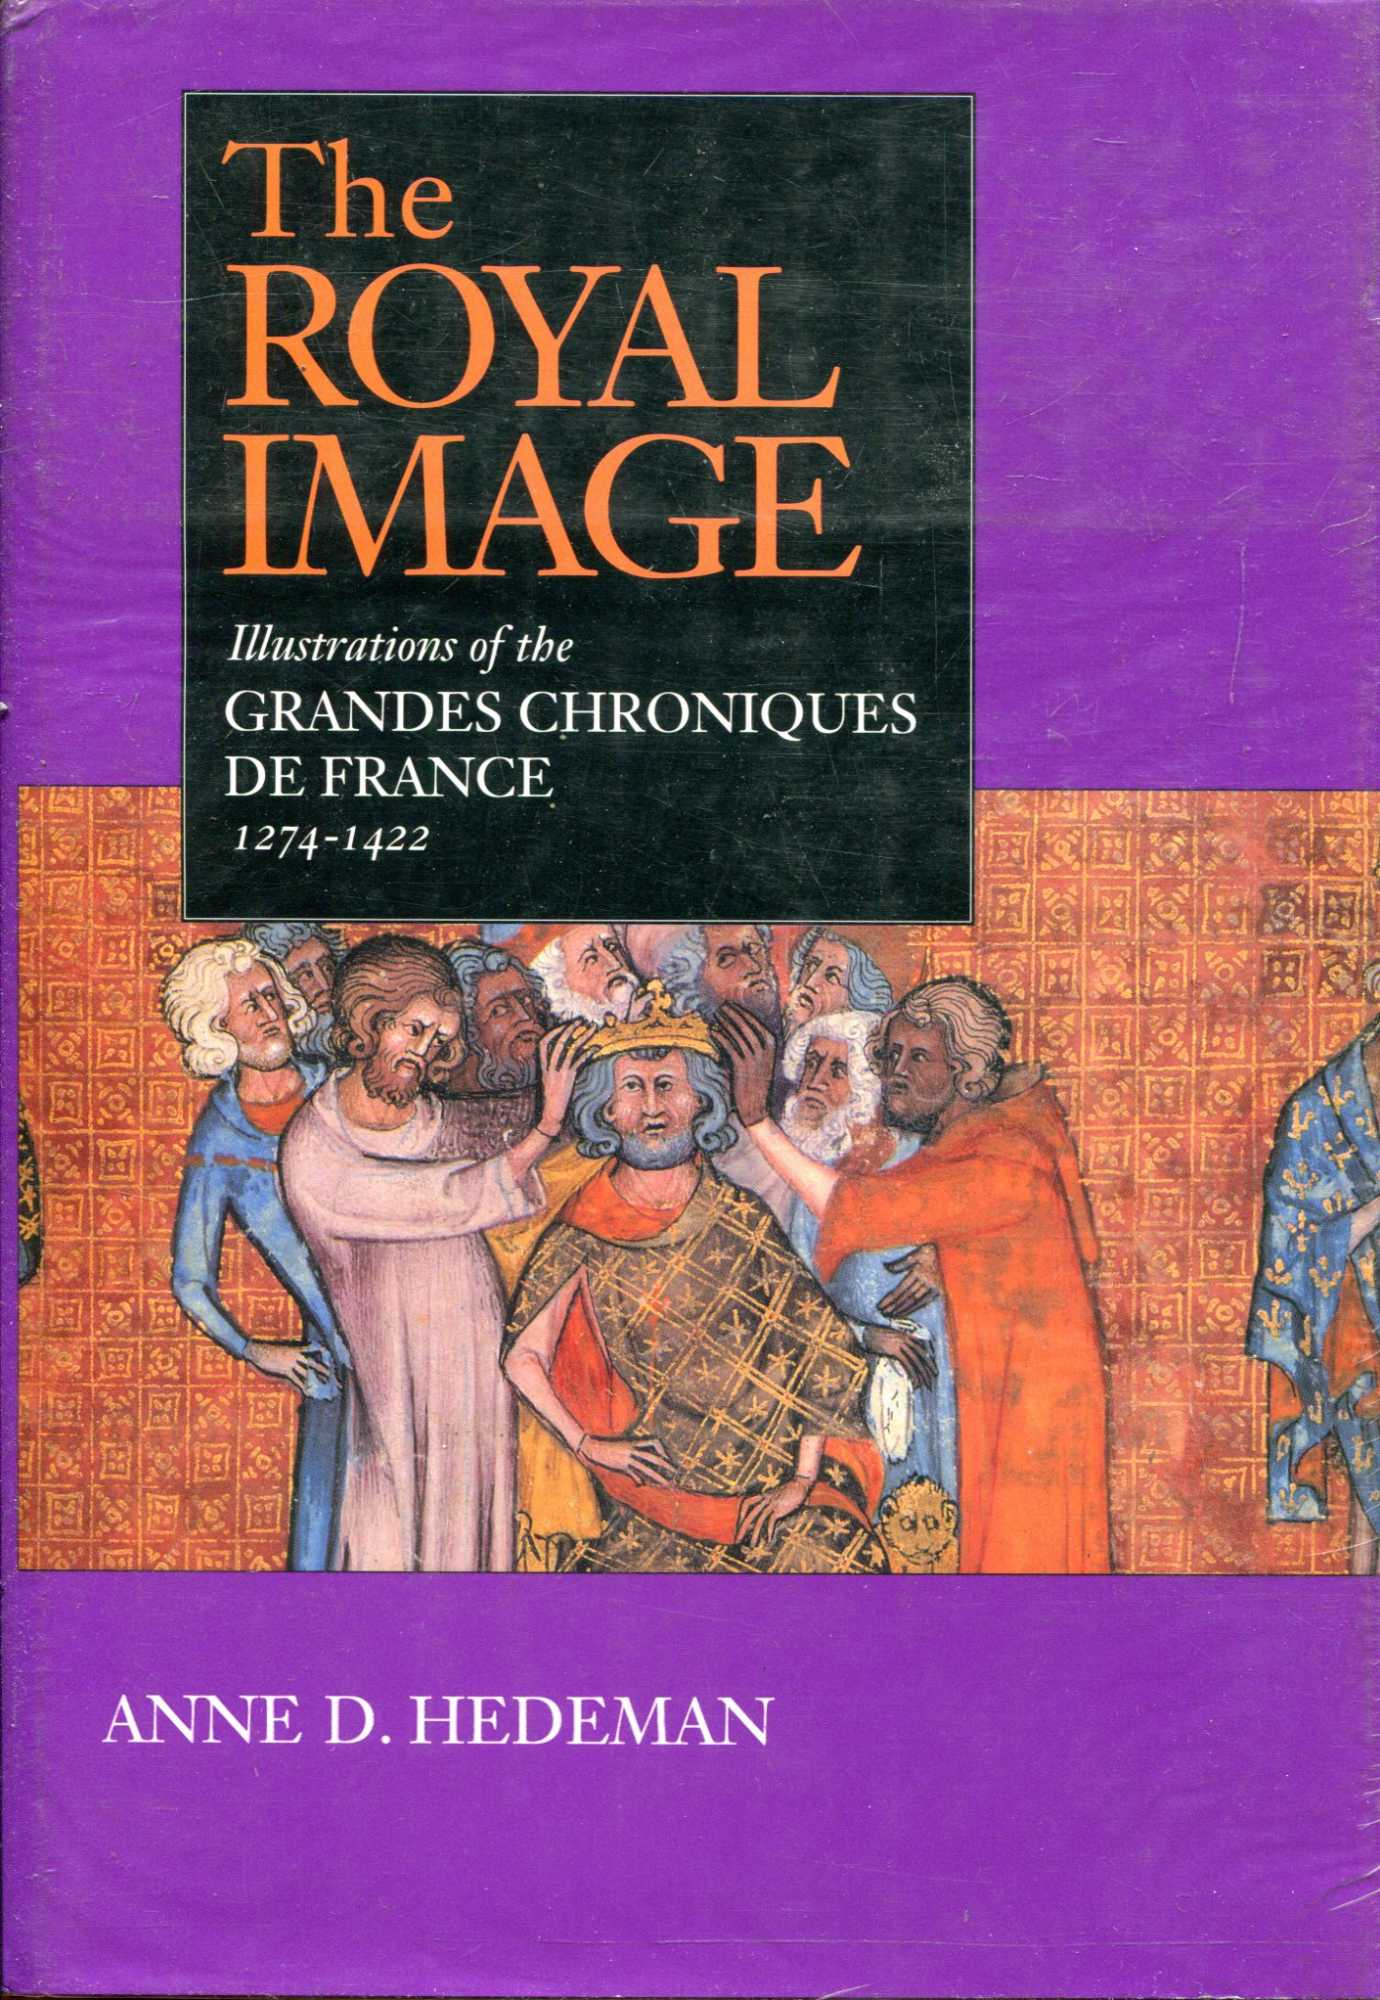 Image for The Royal Image: Illustrations of the Grandes Chroniques de France, 1274-1422 (California Studies in the History of Art)